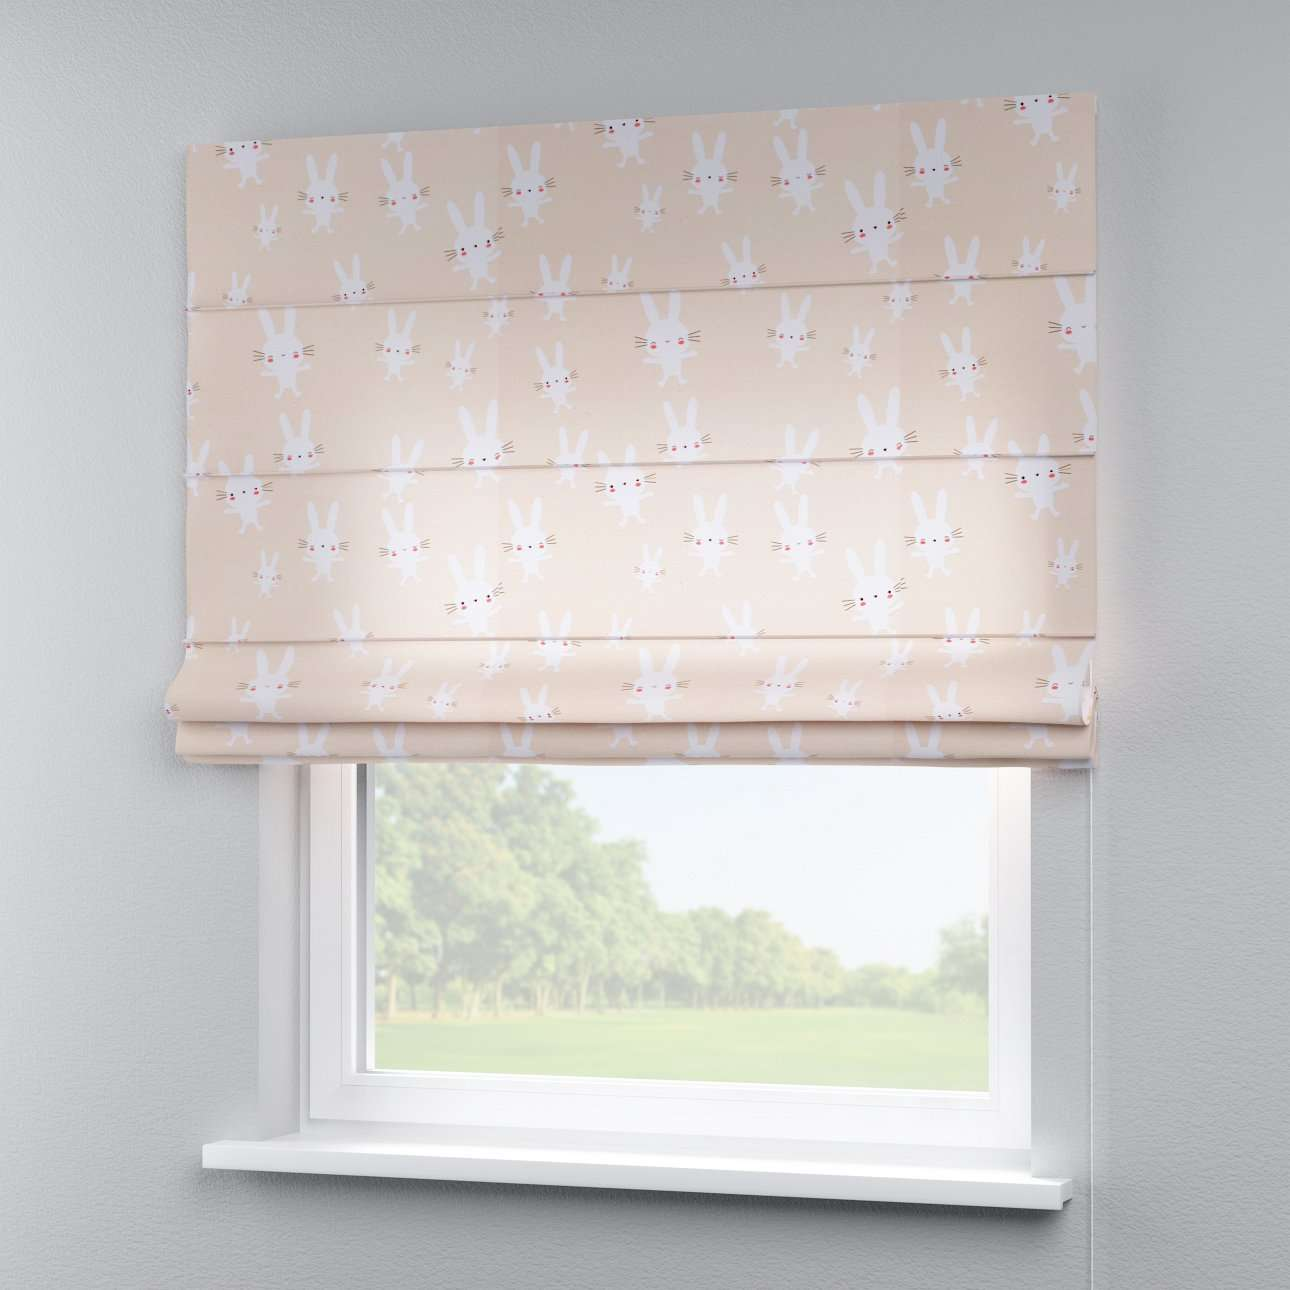 Capri roman blind 80 x 170 cm (31.5 x 67 inch) in collection Apanona, fabric: 151-00